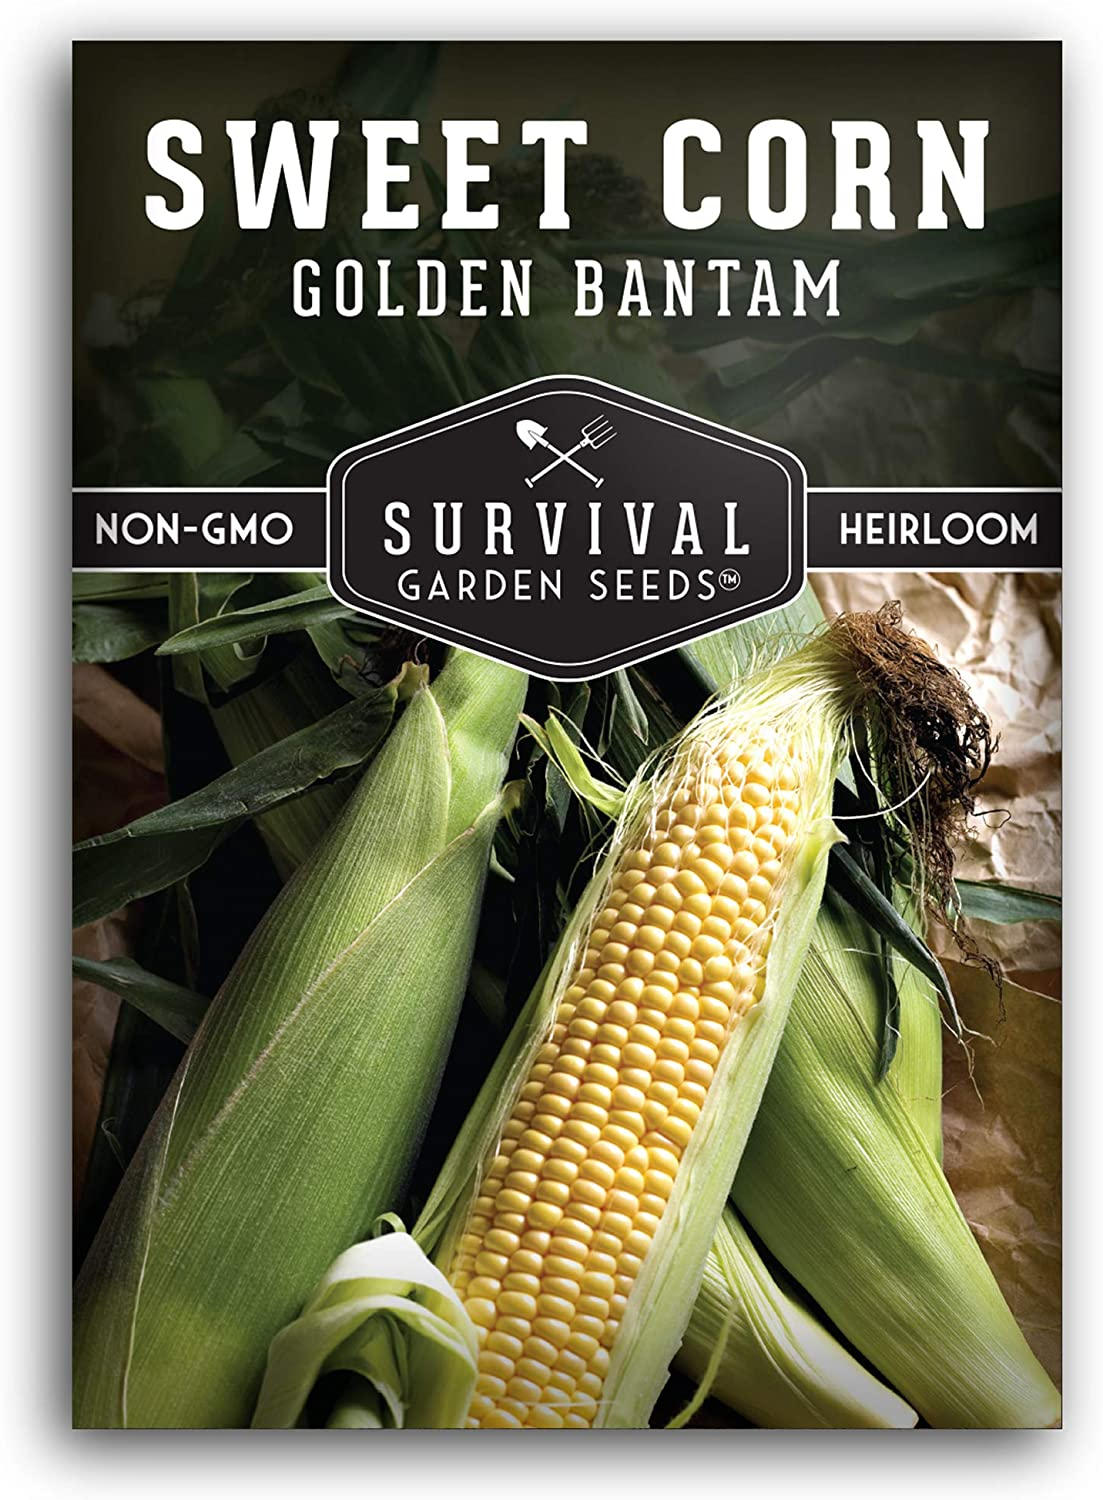 Survival Garden Seeds - Golden Bantam Sweet Corn Seed for Planting - Packet with Instructions to Plant and Grow in Your Home Vegetable Garden - Non-GMO Heirloom Variety